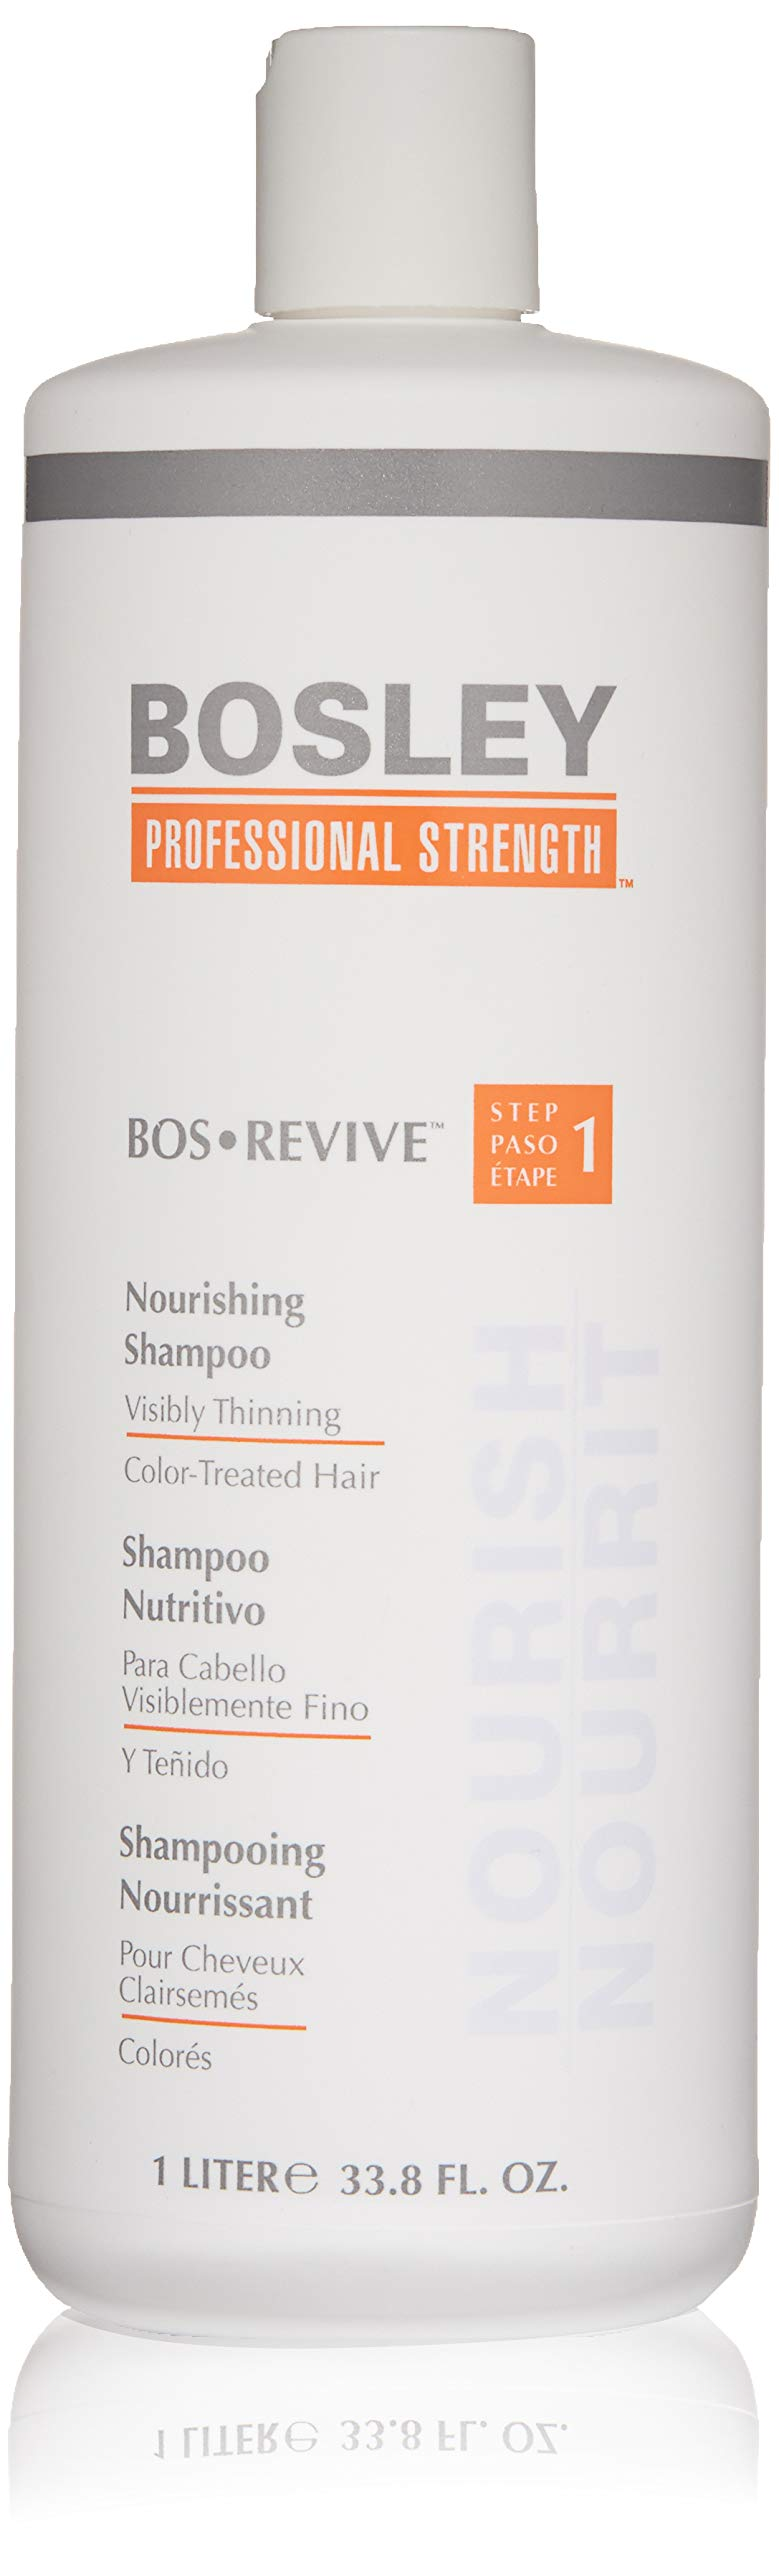 Bosley Bosley:bos-revive Nourishing Shampoo for Color-treated Hair 33.8oz, 33.8 Ounce by Bosley Professional Strength